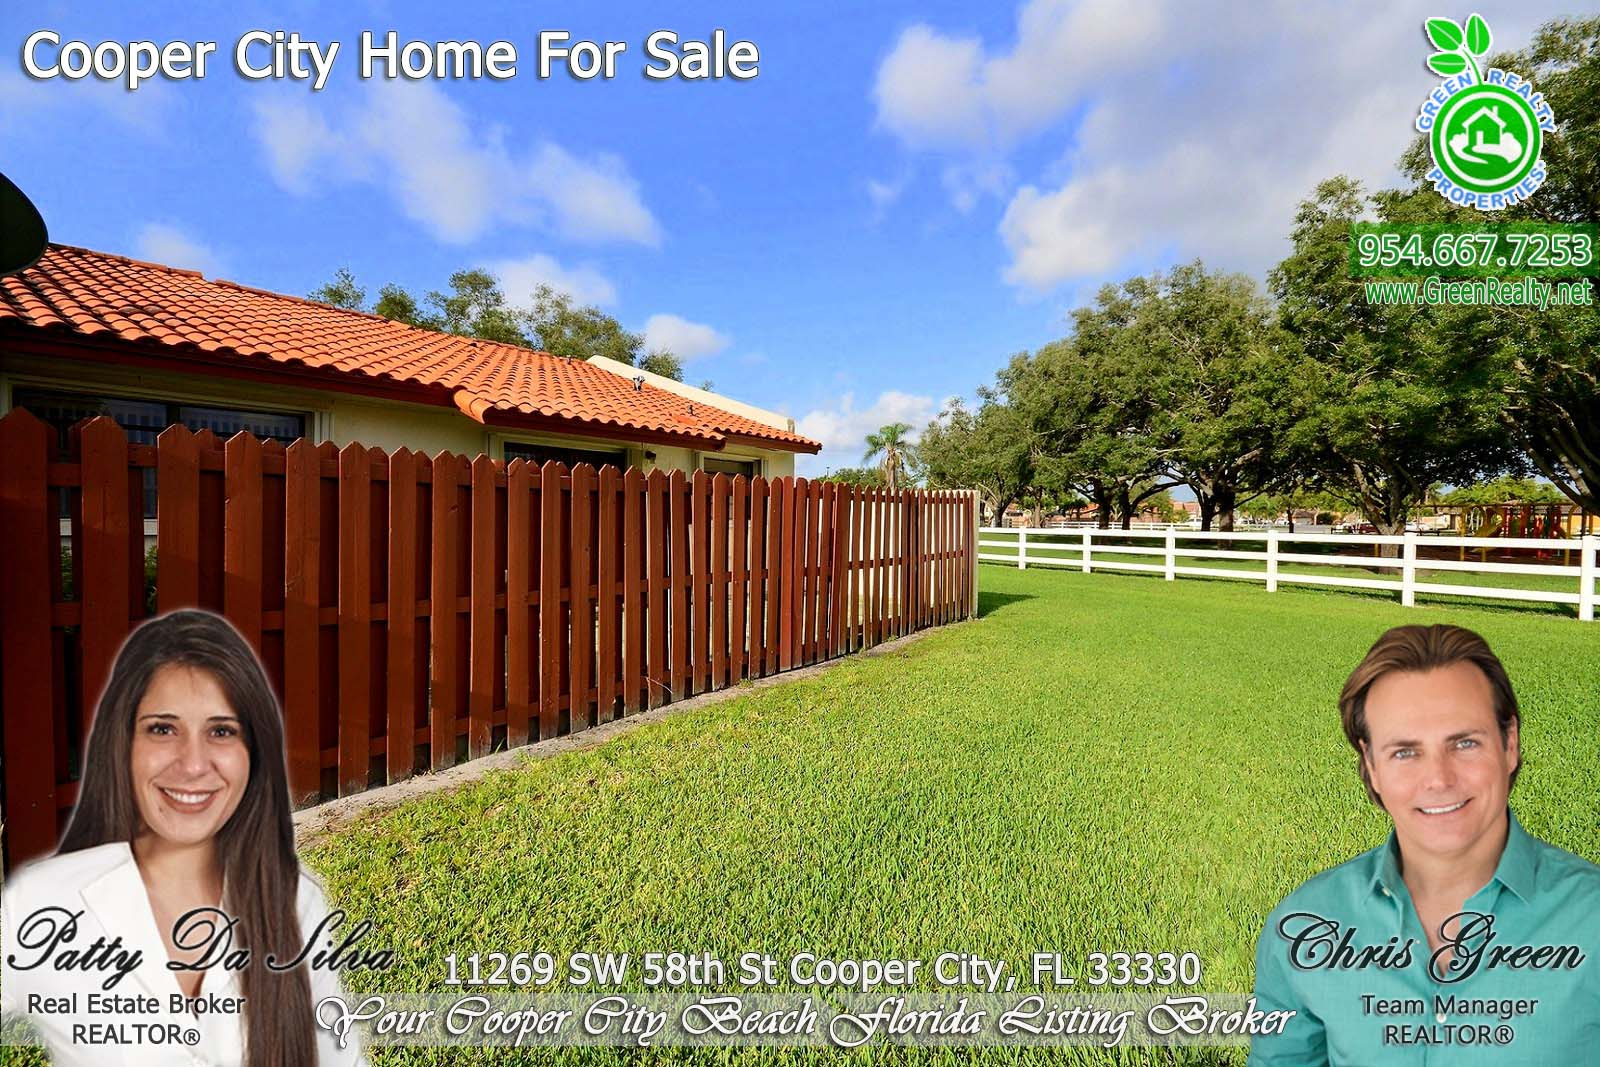 22 Cooper City Real Estate - Villas (3)